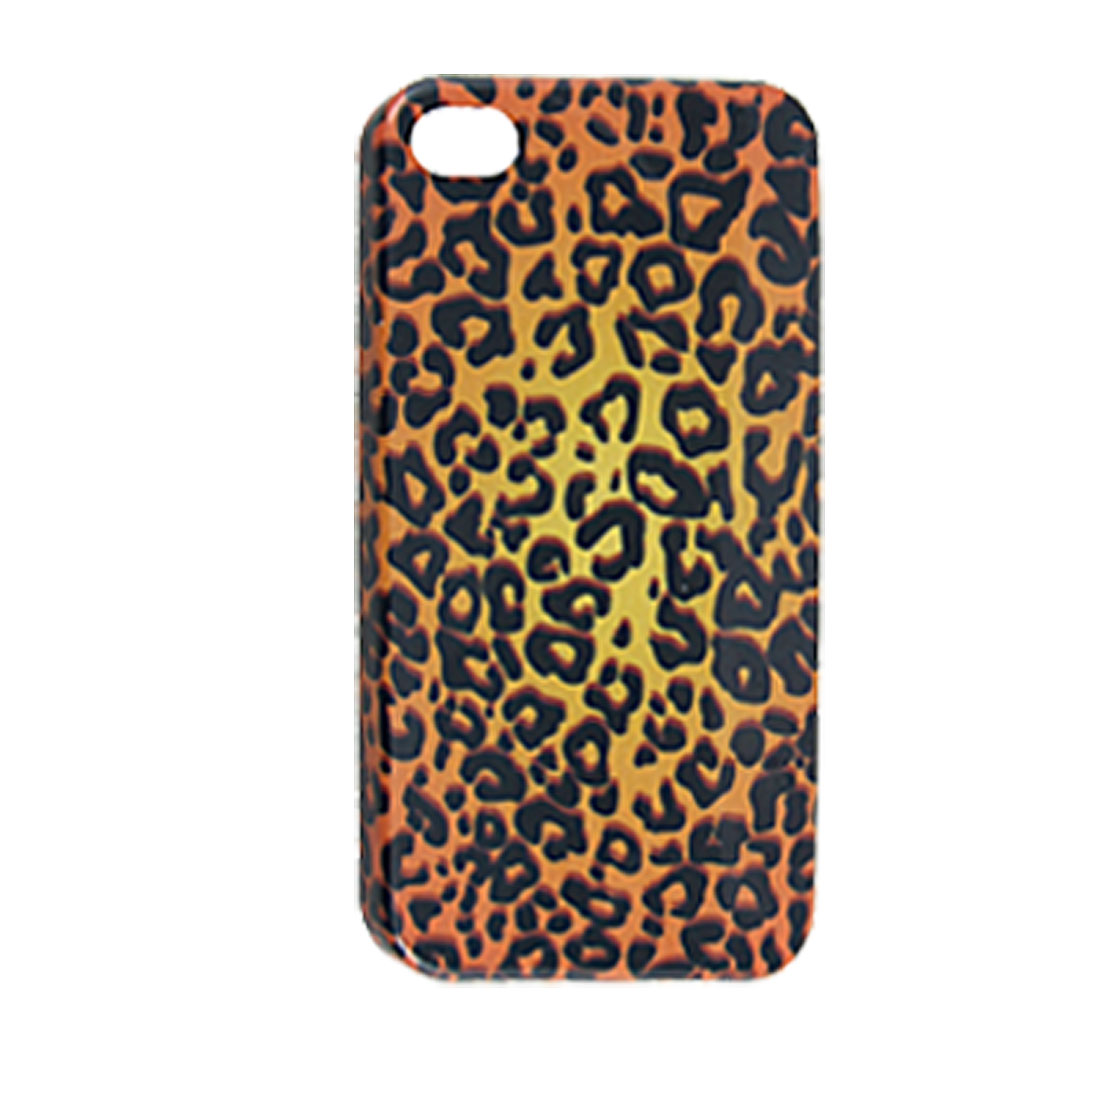 Yellow Black Leopard Print Plastic IMD Back Cover for iPhone 4 4G